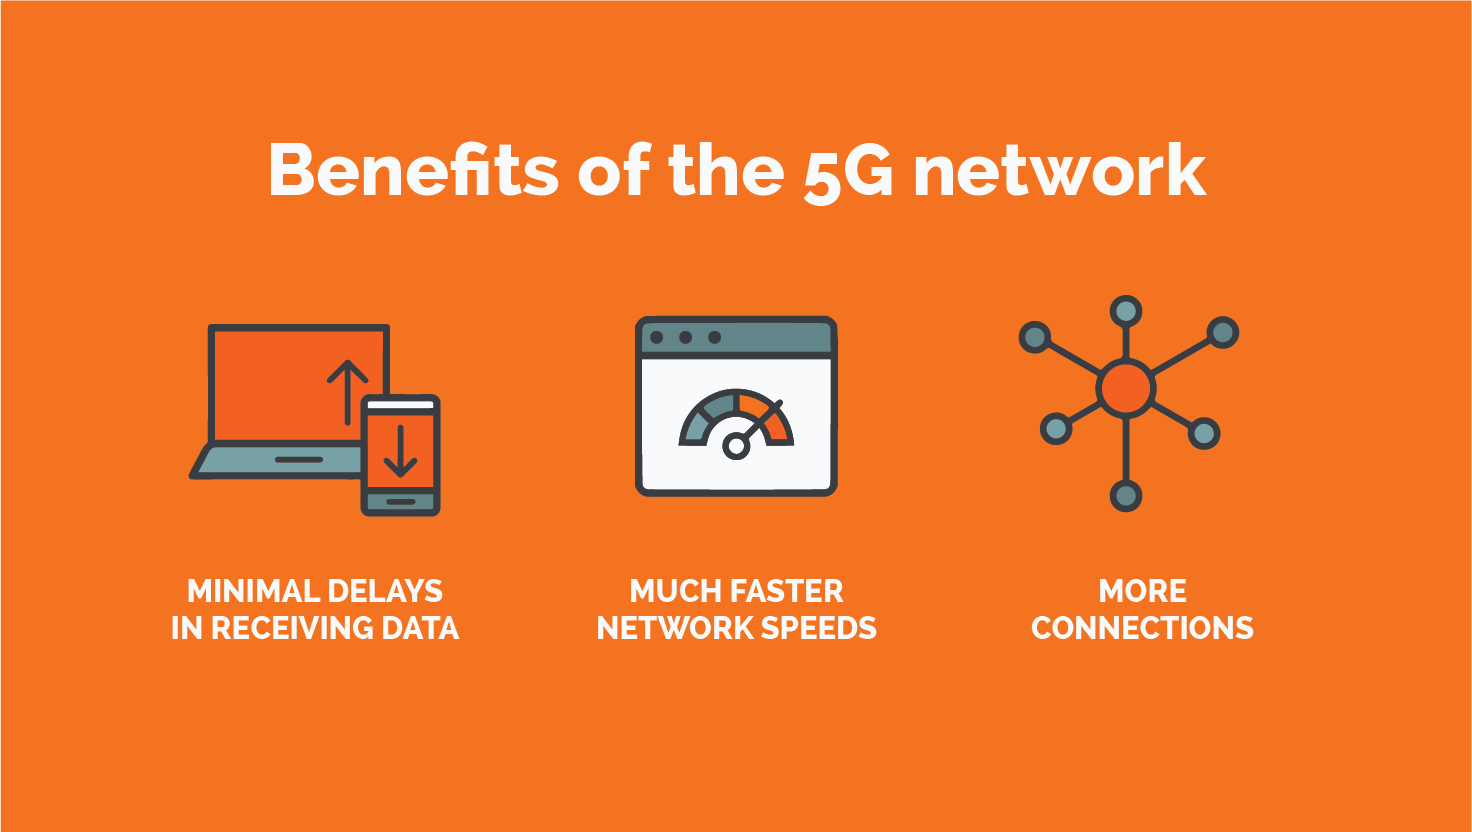 5G Australia | Information About The 5G Network In Australia